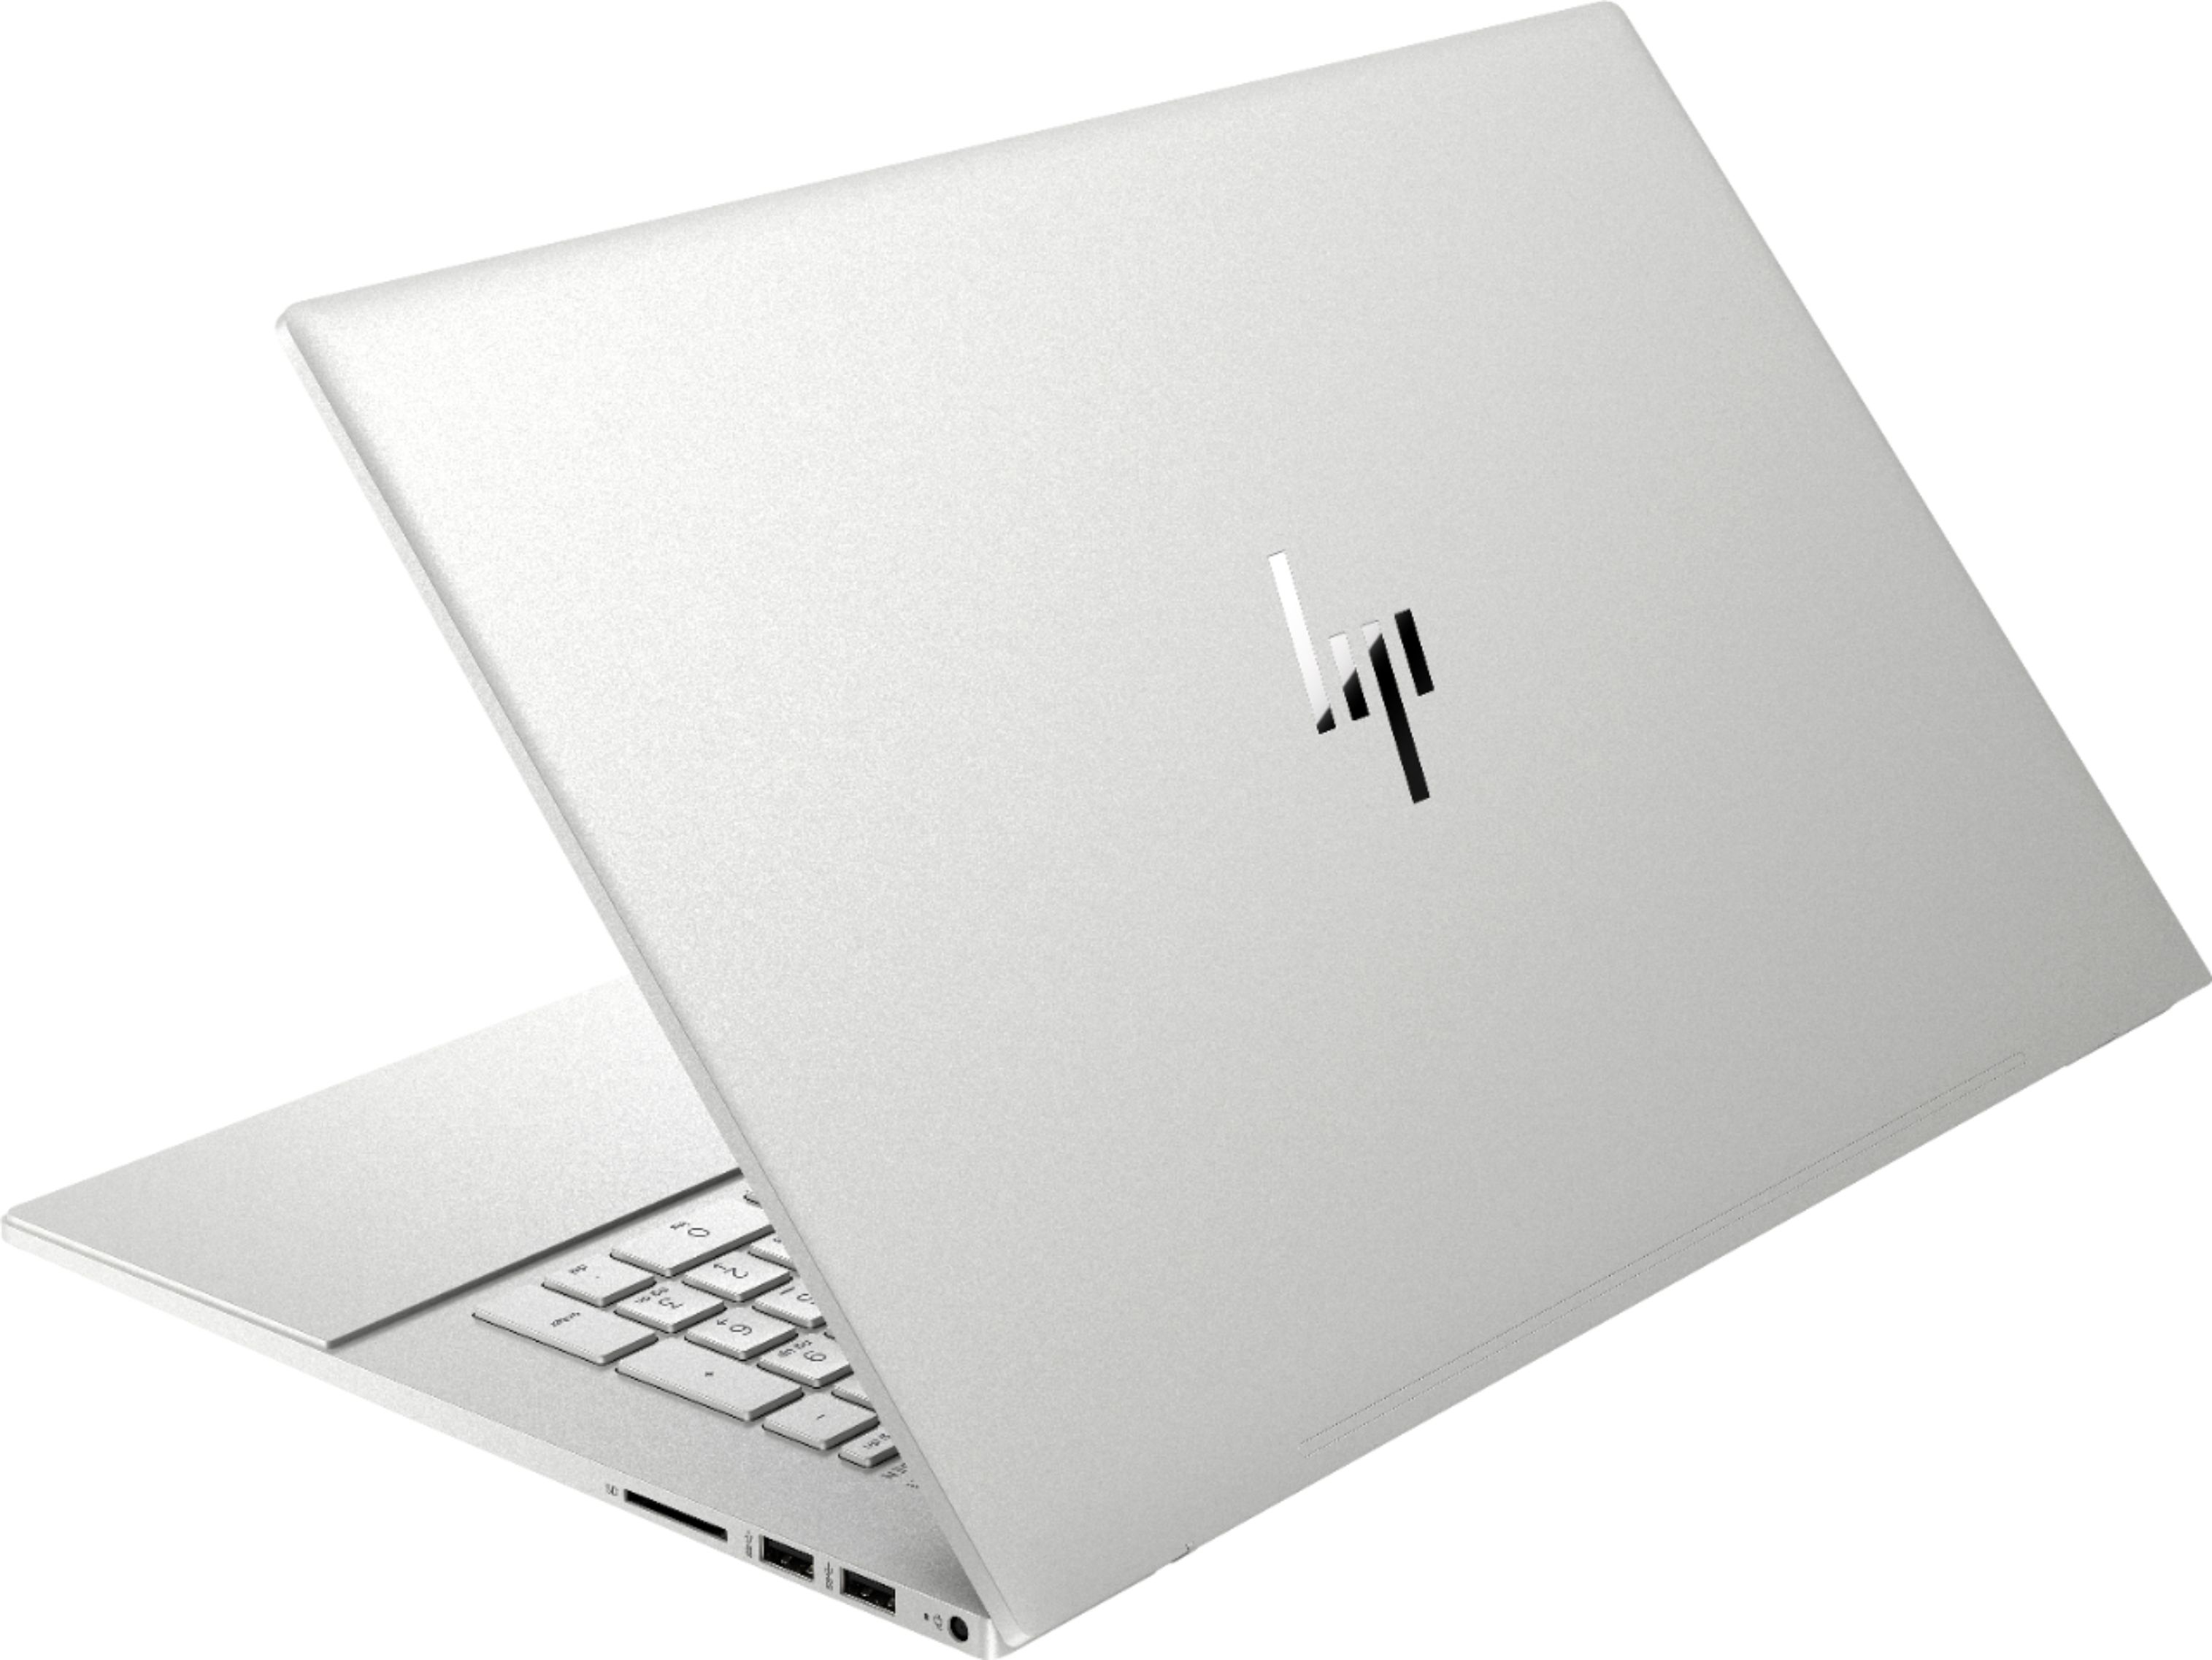 """Alt View Zoom 1. HP - ENVY 17.3"""" Touch-Screen Laptop - Intel Core i7 - 12GB Memory - 512GB SSD + 32GB Optane – NVIDIA GeForce MX330 - Natural Silver."""